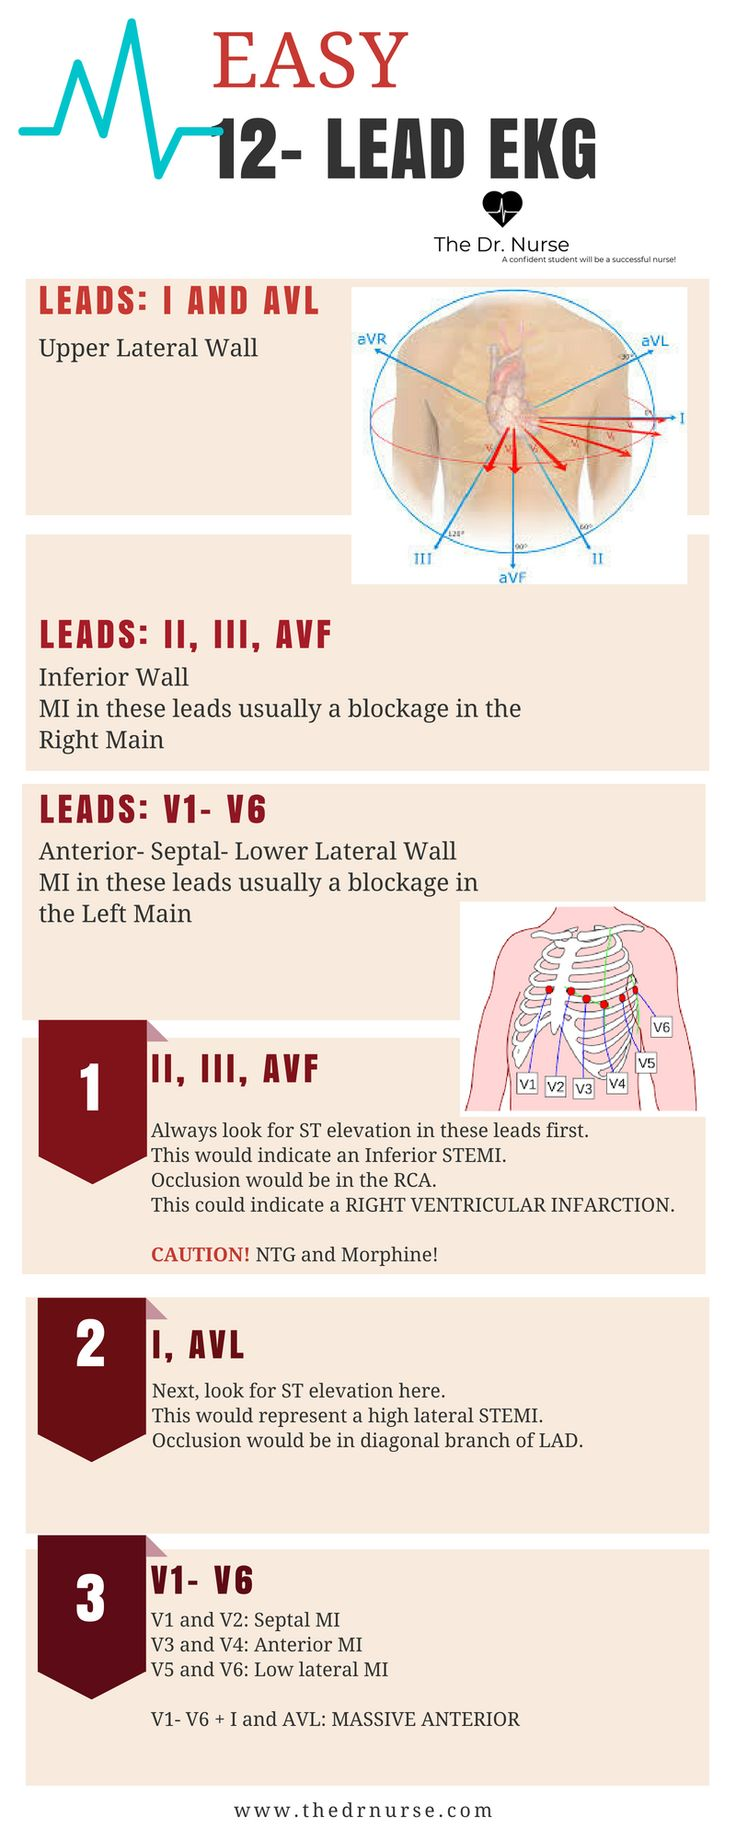 146 Best Cardio Blood Images On Pinterest Cardiac Nursing Simple Brain Diagram Labeled Frompo Use These Three Easy Steps To Learn 12 Lead Ekg Interpretation More Like This